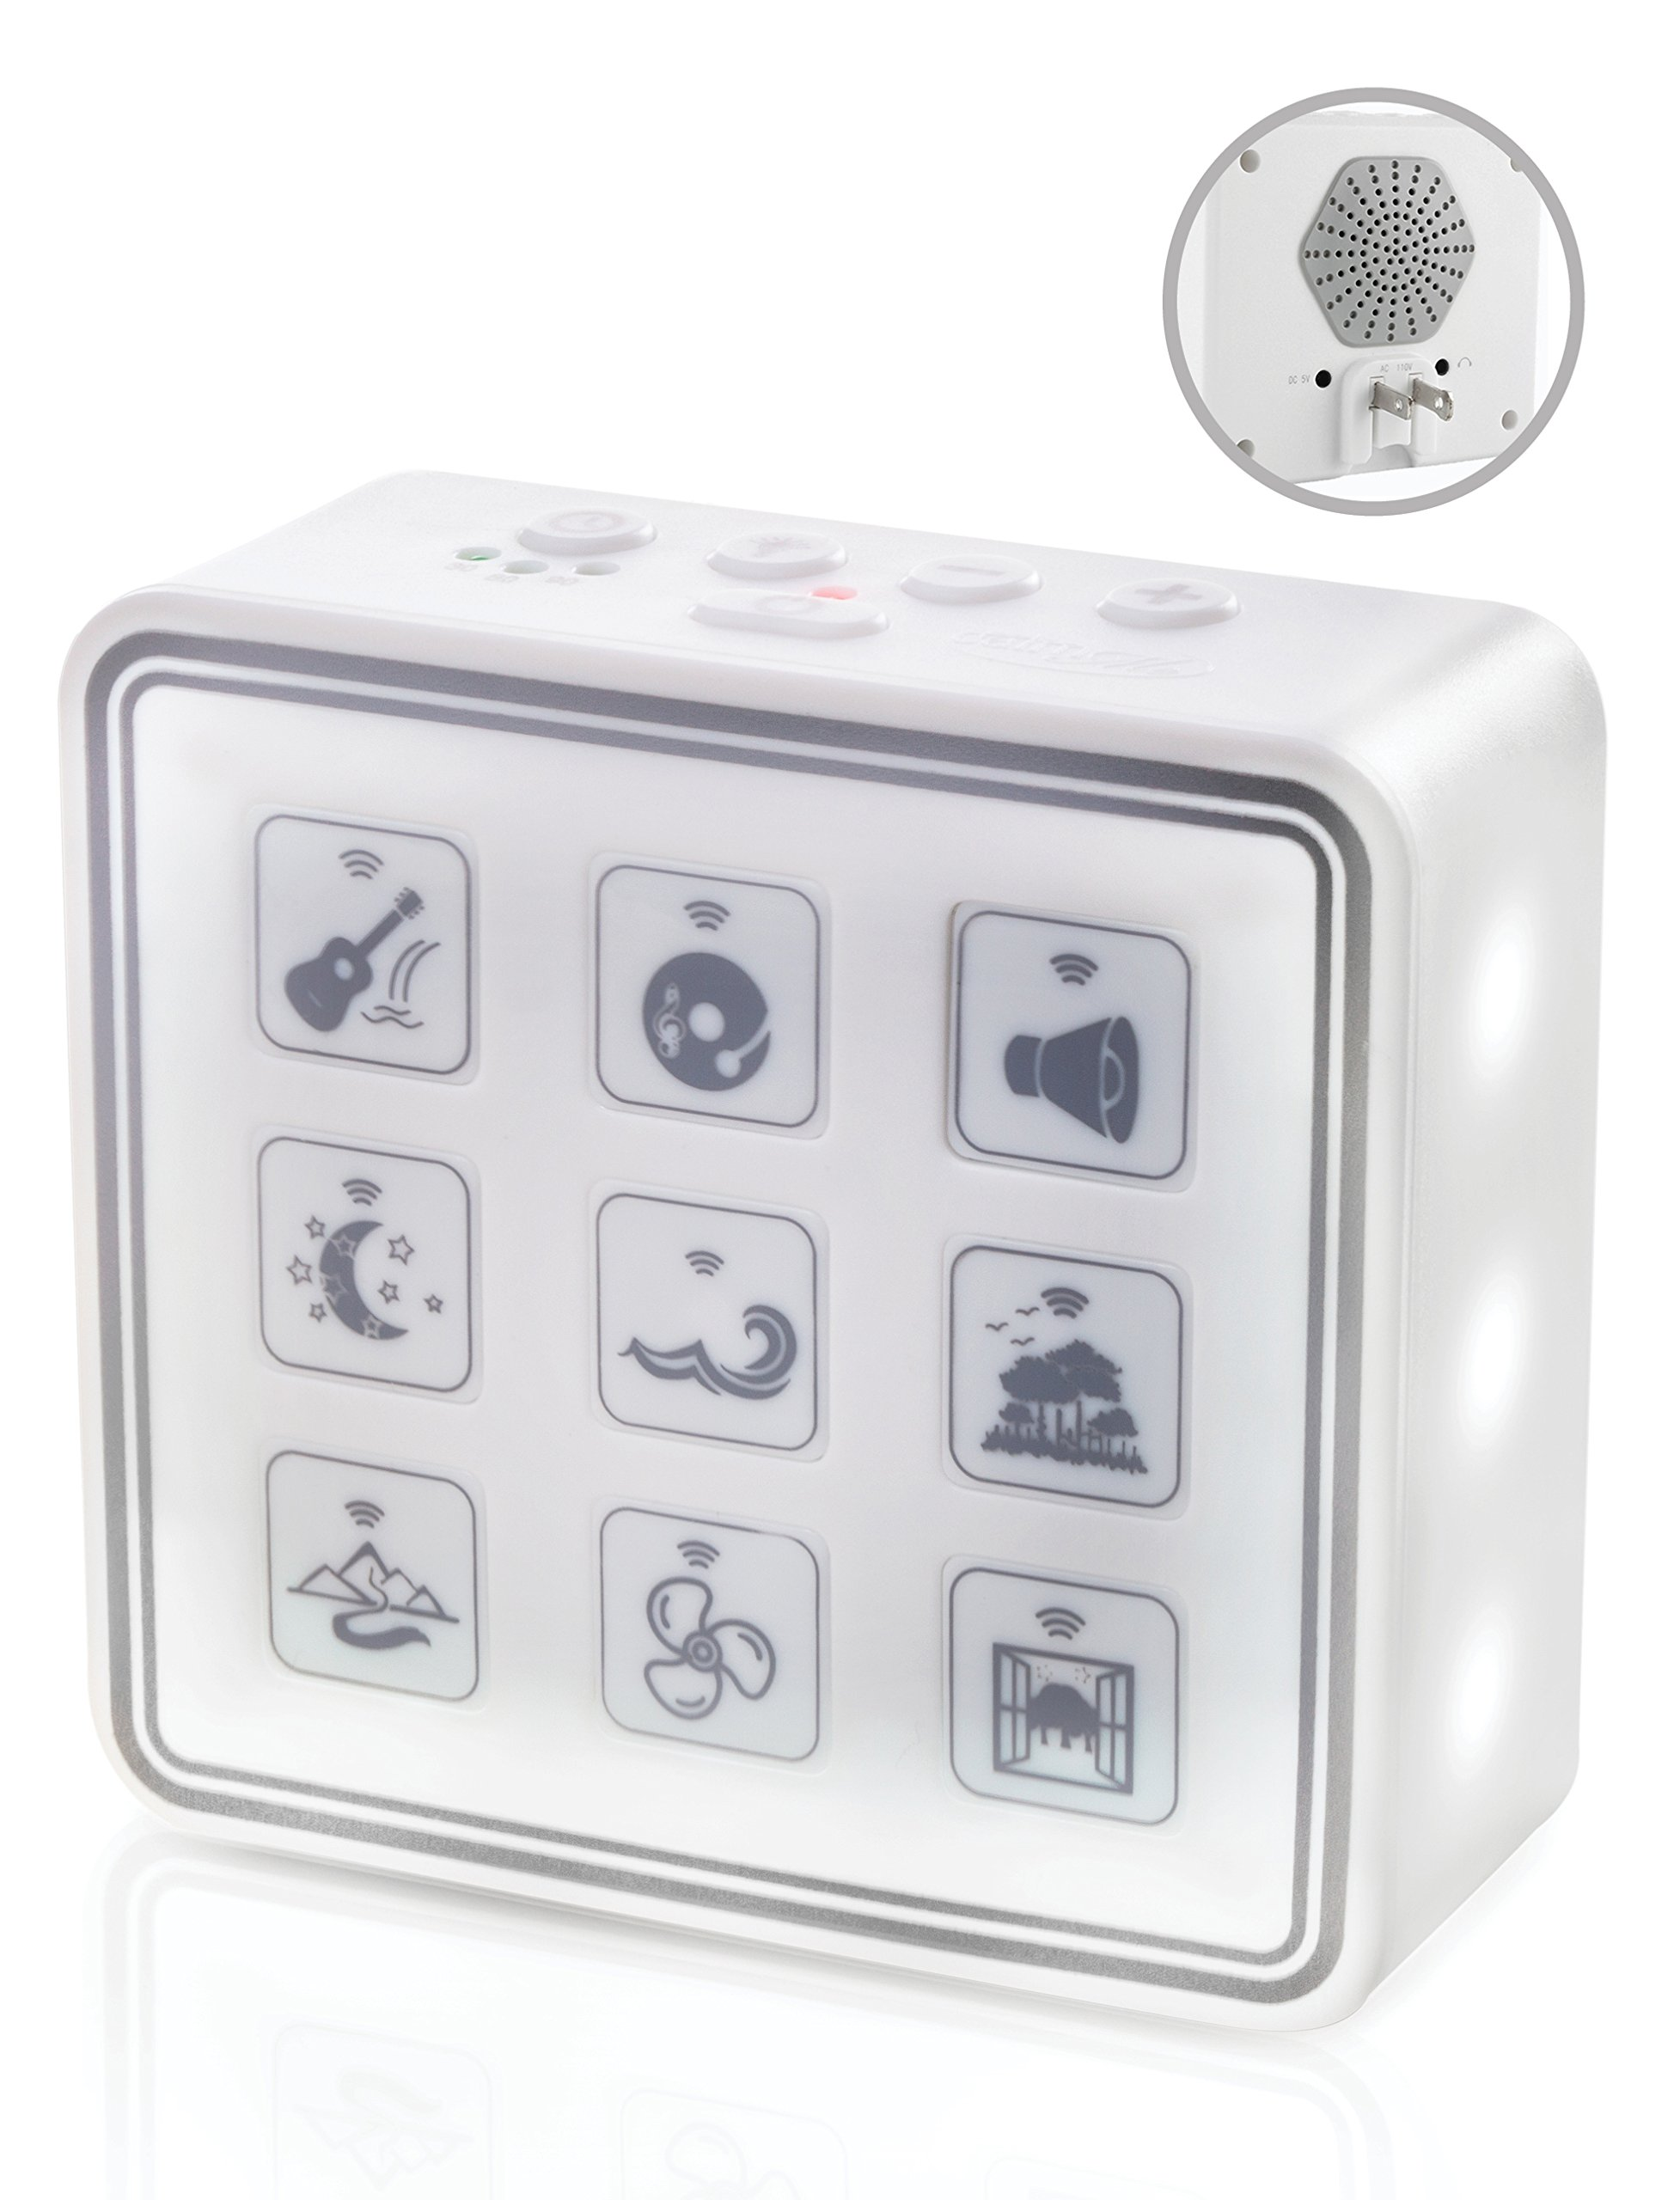 Plug-In Nightlight White Noise Sound Machine – Relaxing Sleep Therapy for Adults & Baby w/9 Natural Sound Settings, Auto Timer, Headphone Jack & USB Cord – Portable for Home & Travel